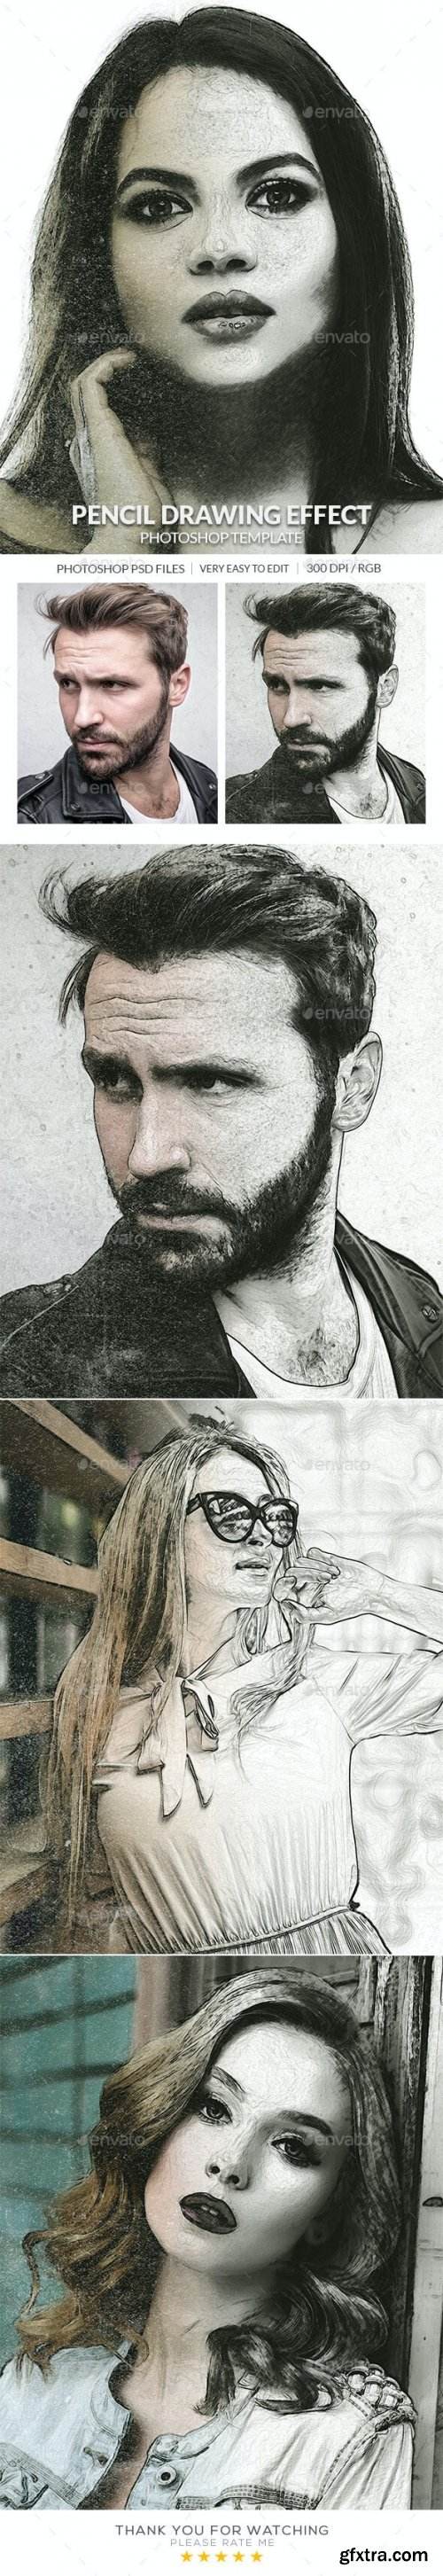 GraphicRiver - Pencil Drawing Photo Effect 30439345